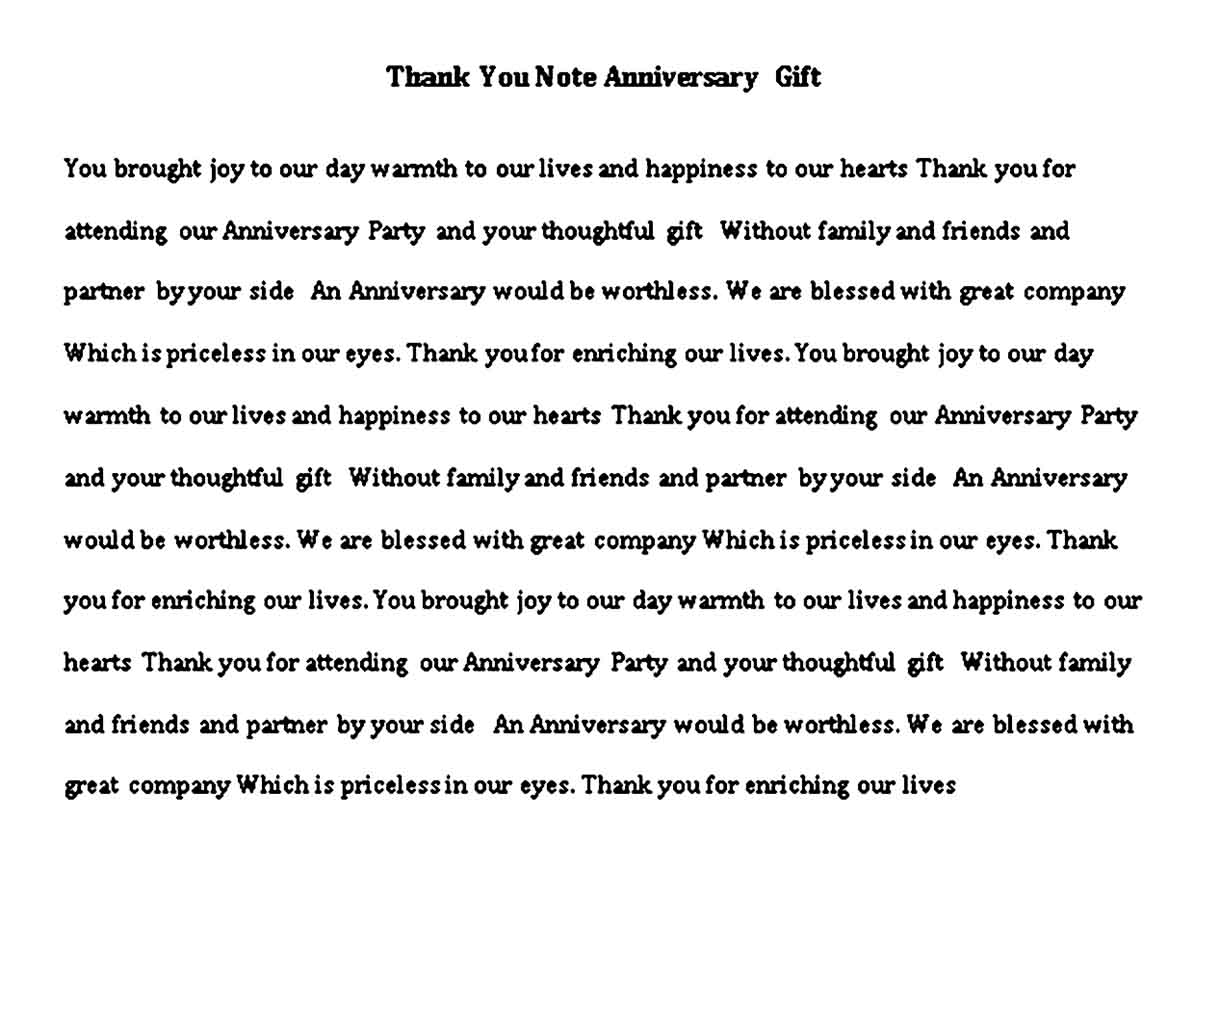 thank you note anniversary gift